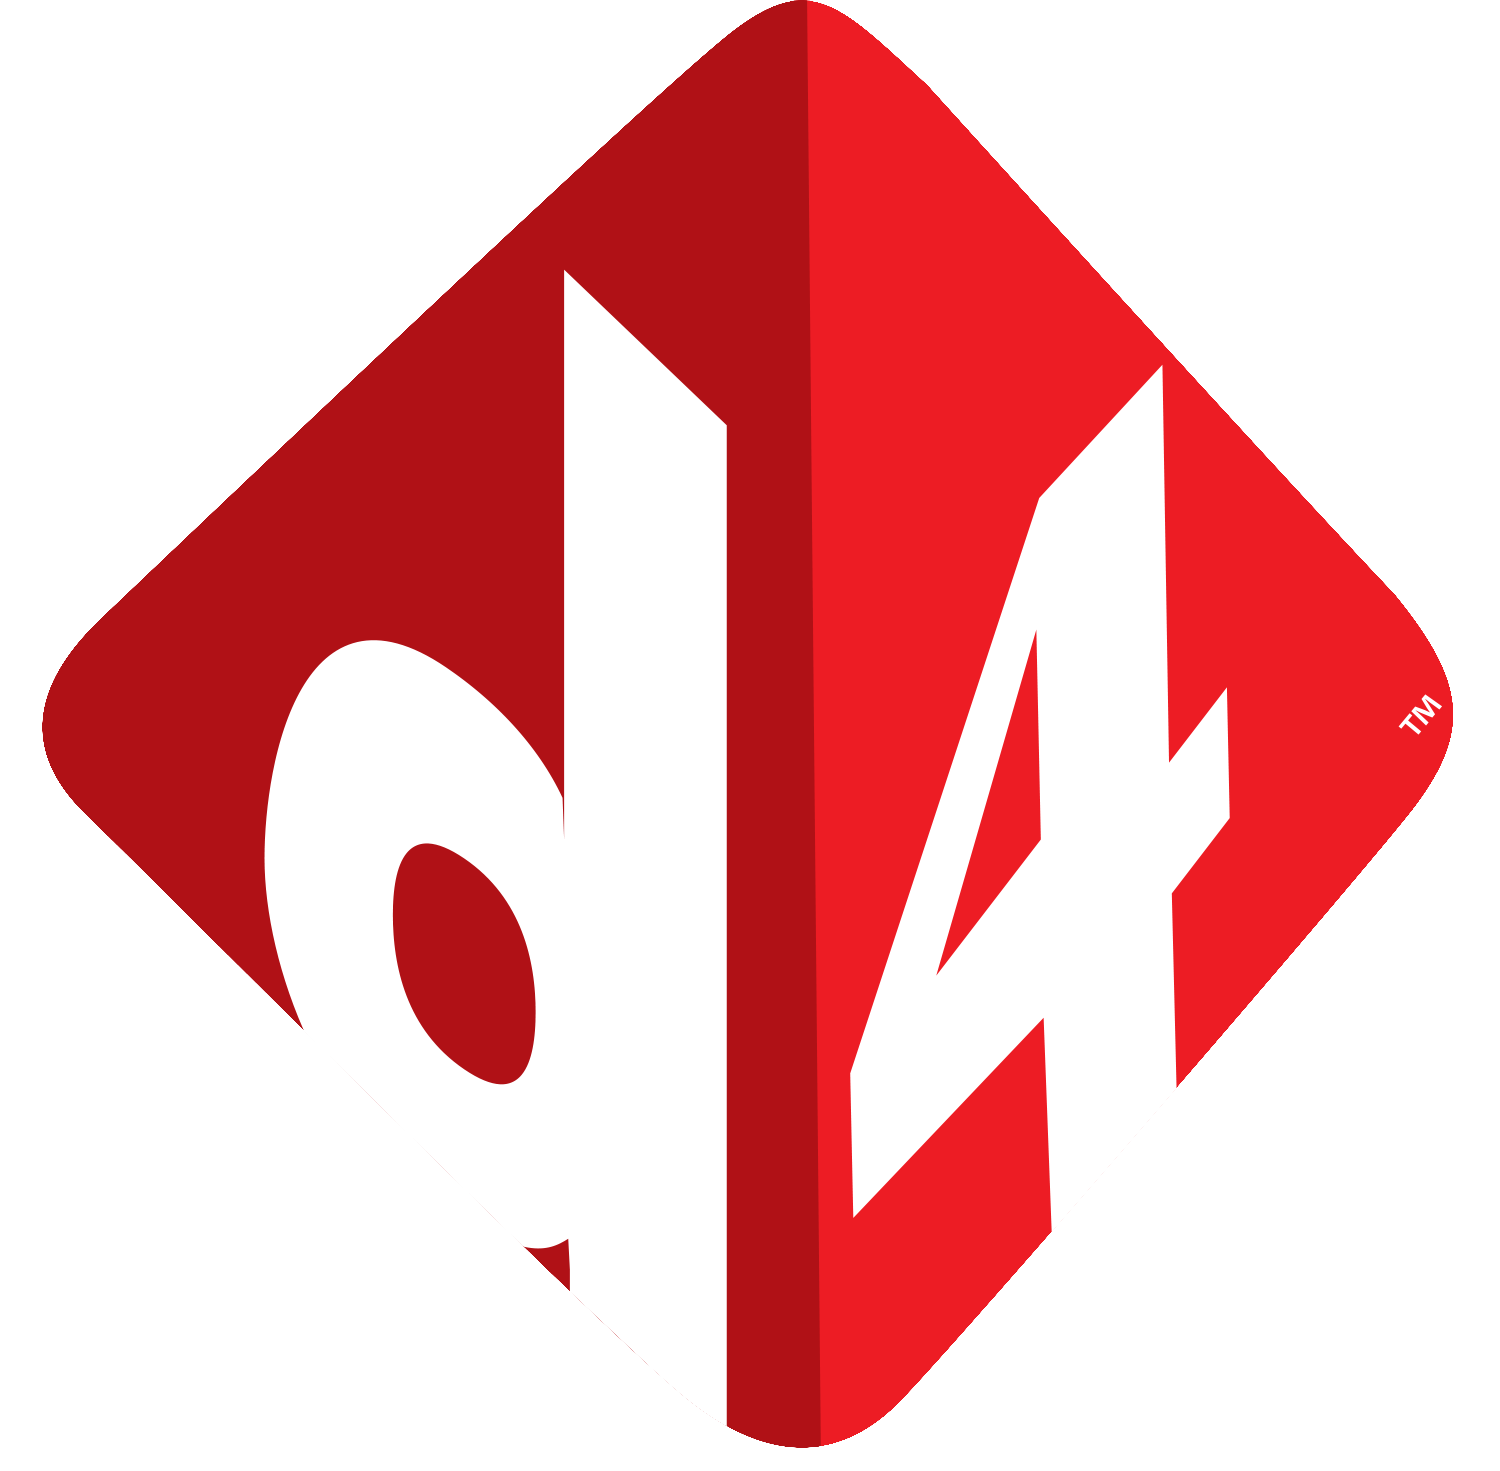 D4-TM-red.png